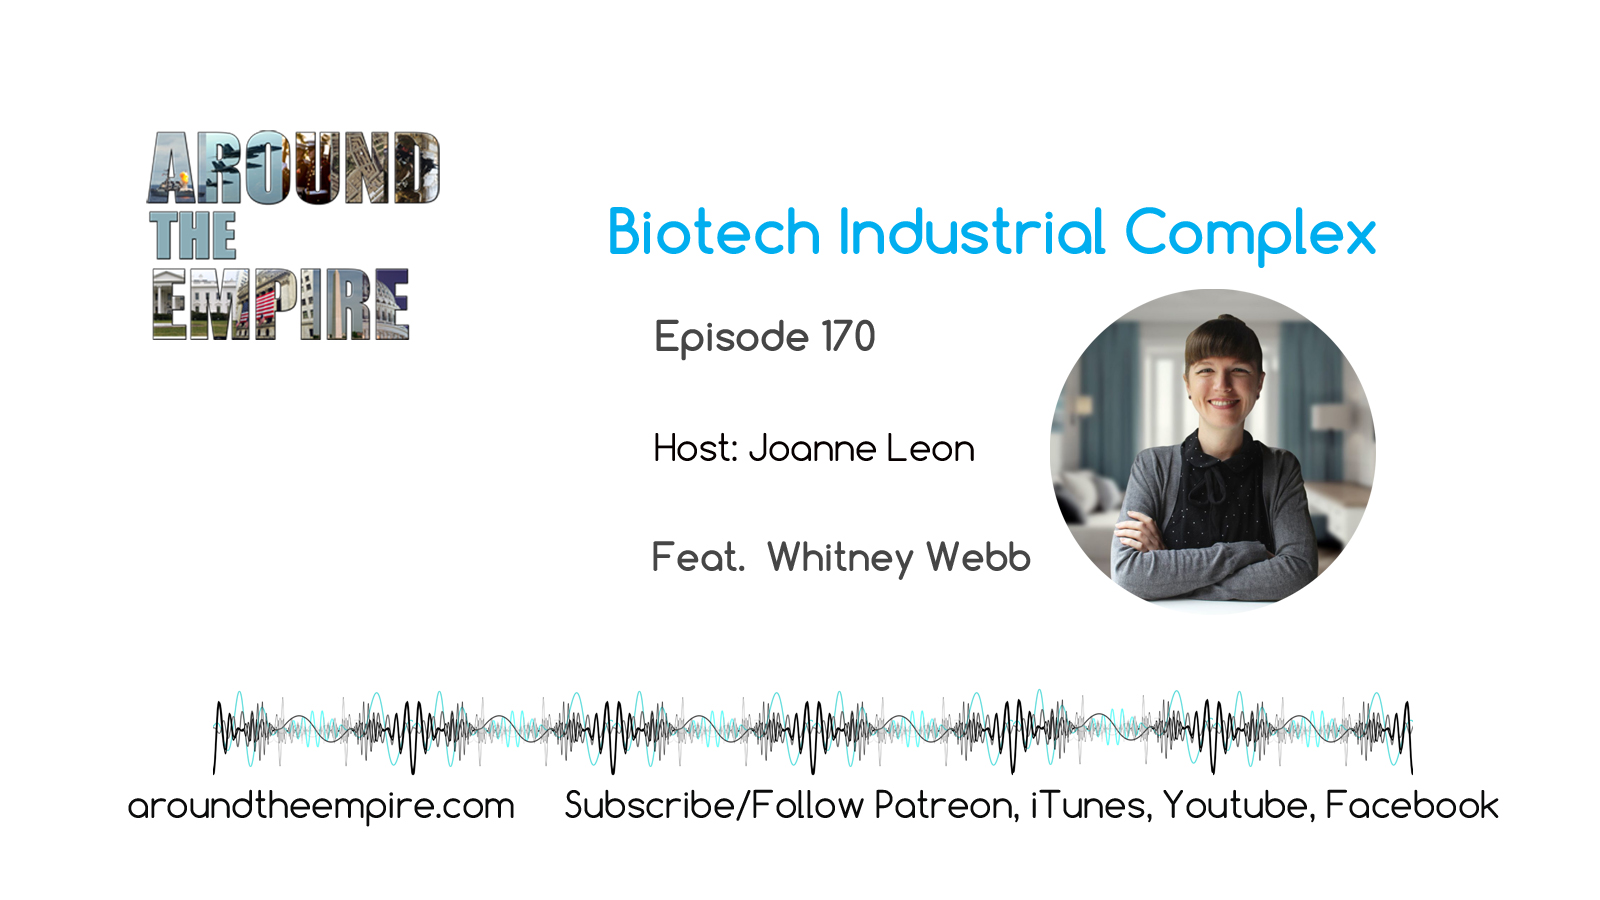 Ep 170 Biotech Industrial Complex feat Whitney Webb